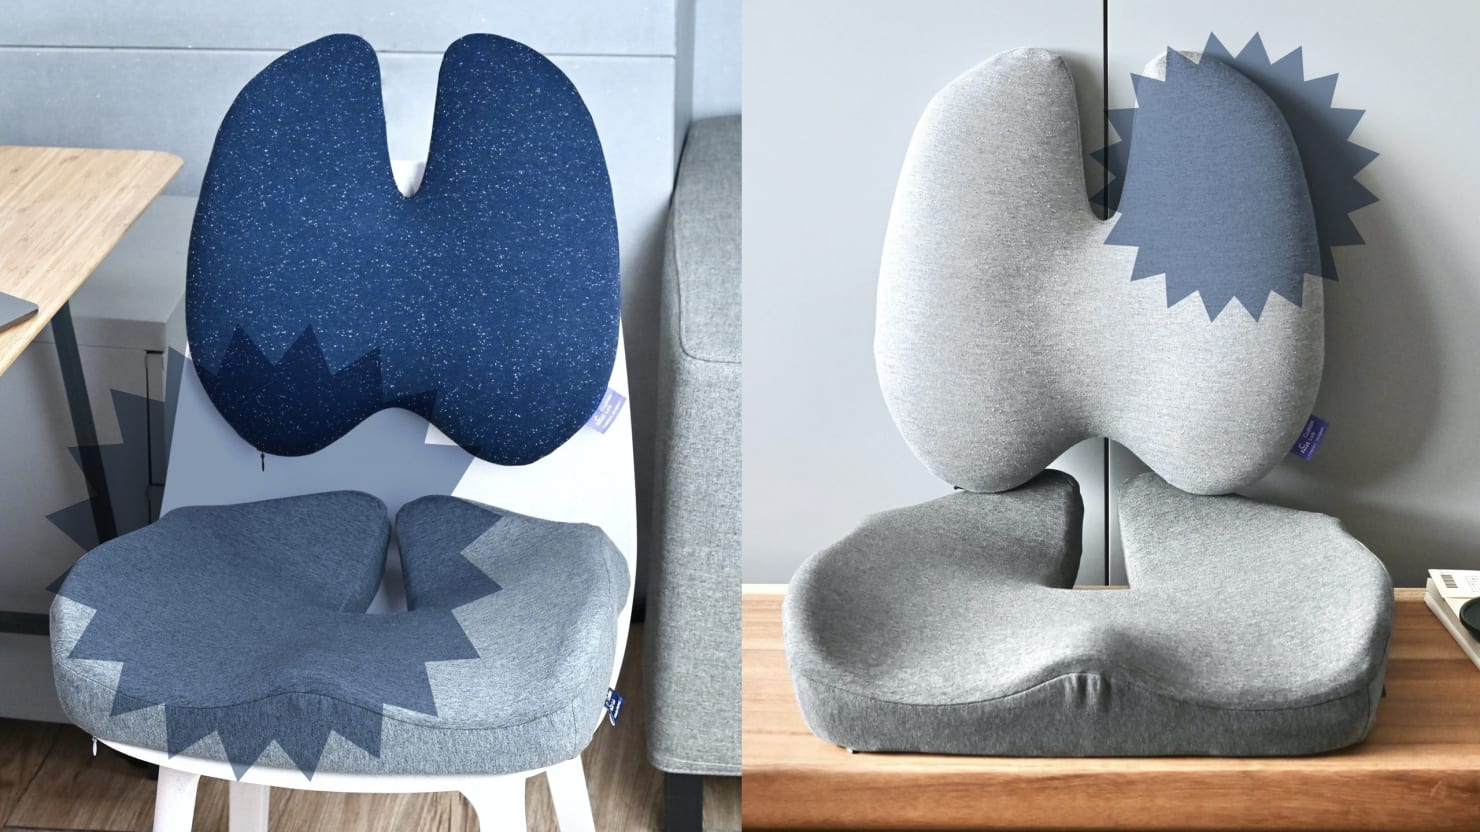 These Cushions Nixed My Back Pain, Even Sitting On a Kitchen Chair